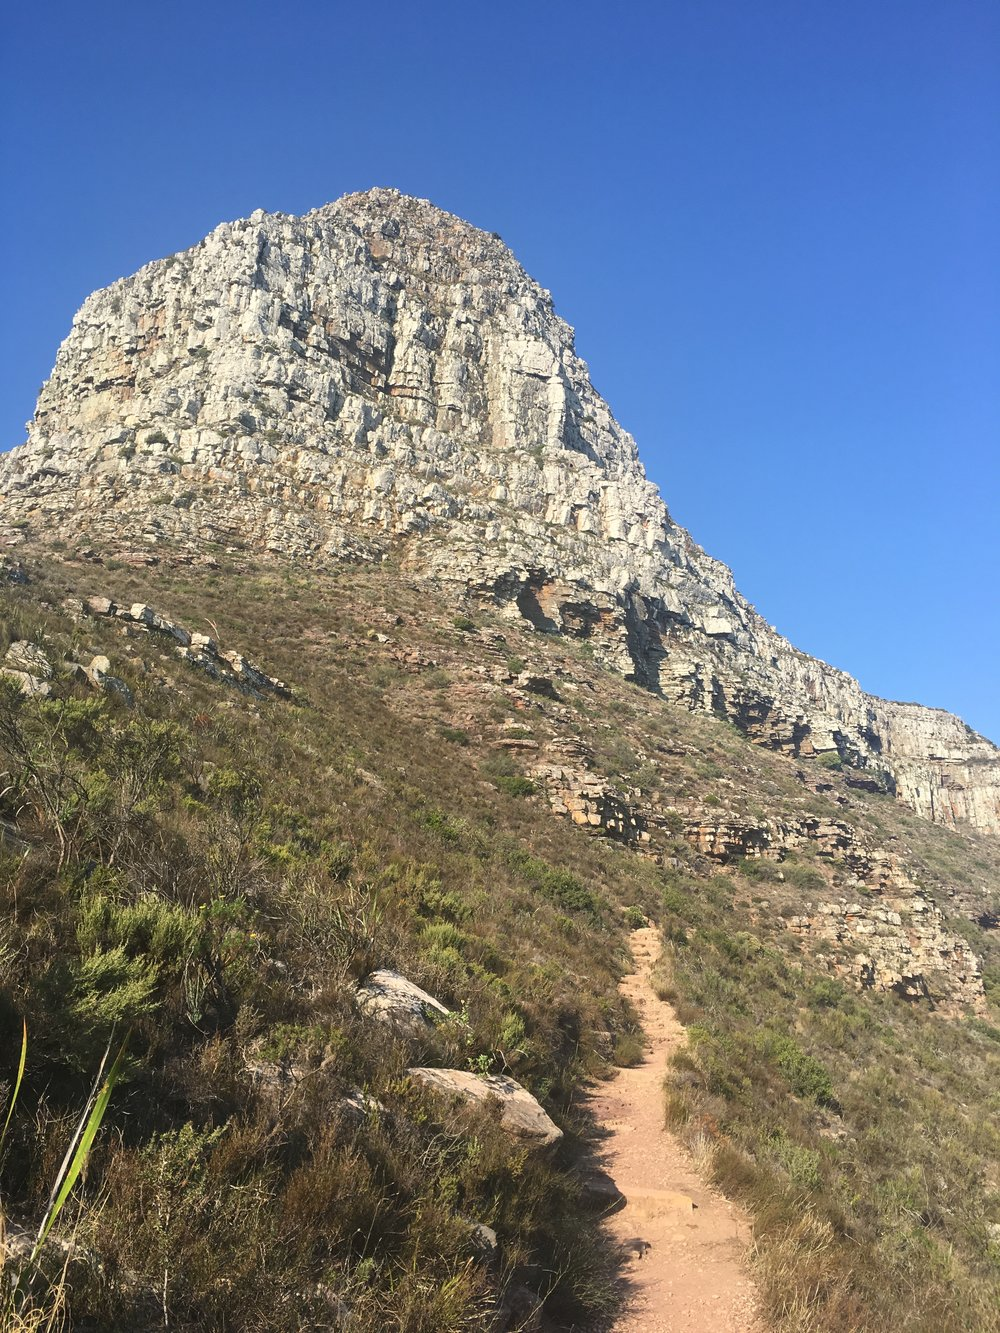 The trail to Lion's Head